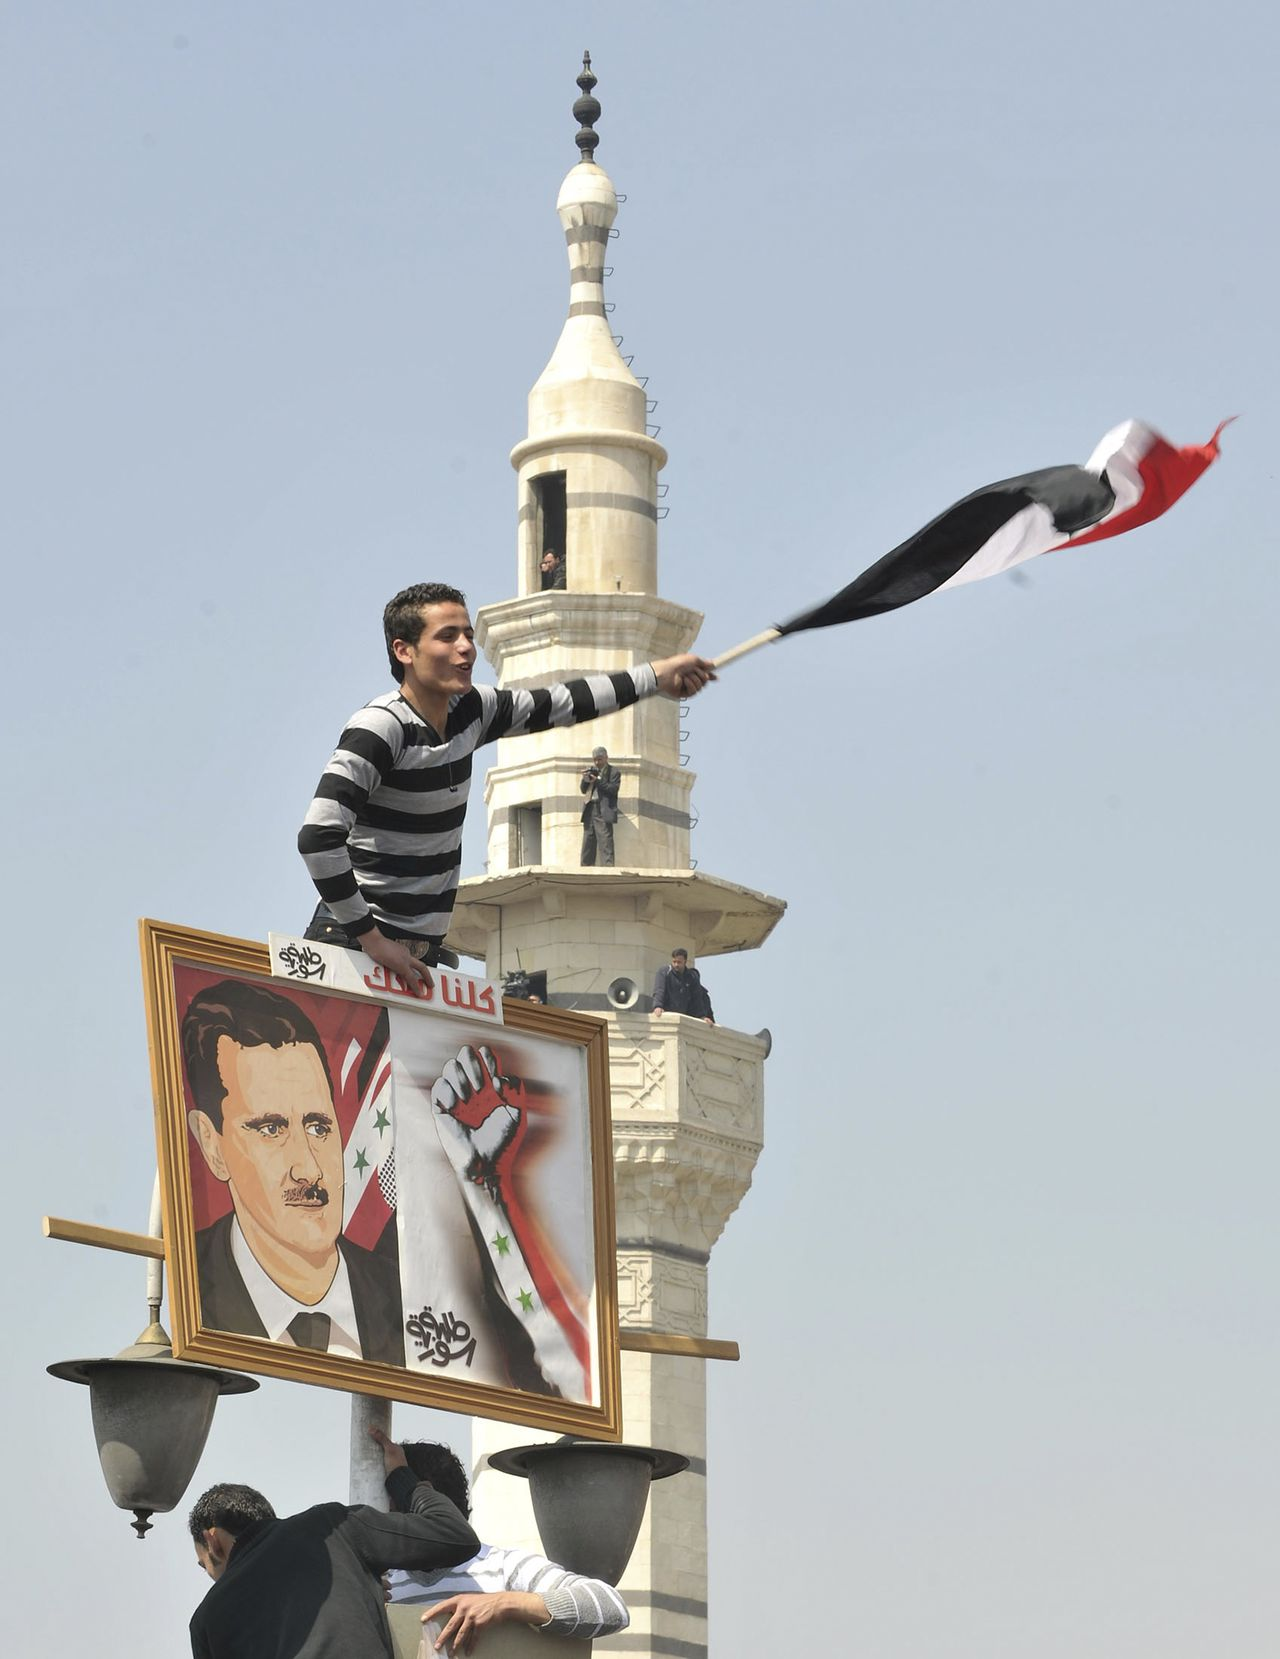 A Syrian man waves the national flag while holding a picture of Syria's President Bashar al-Assad during a pro-government rally at the central bank square in Damascus March 29, 2011. Assad accepted his government's resignation on Tuesday after nearly two weeks of pro-democracy unrest that has posed the gravest challenge to his 11-year rule. REUTERS/Wael Hmedan (SYRIA - Tags: CIVIL UNREST POLITICS)